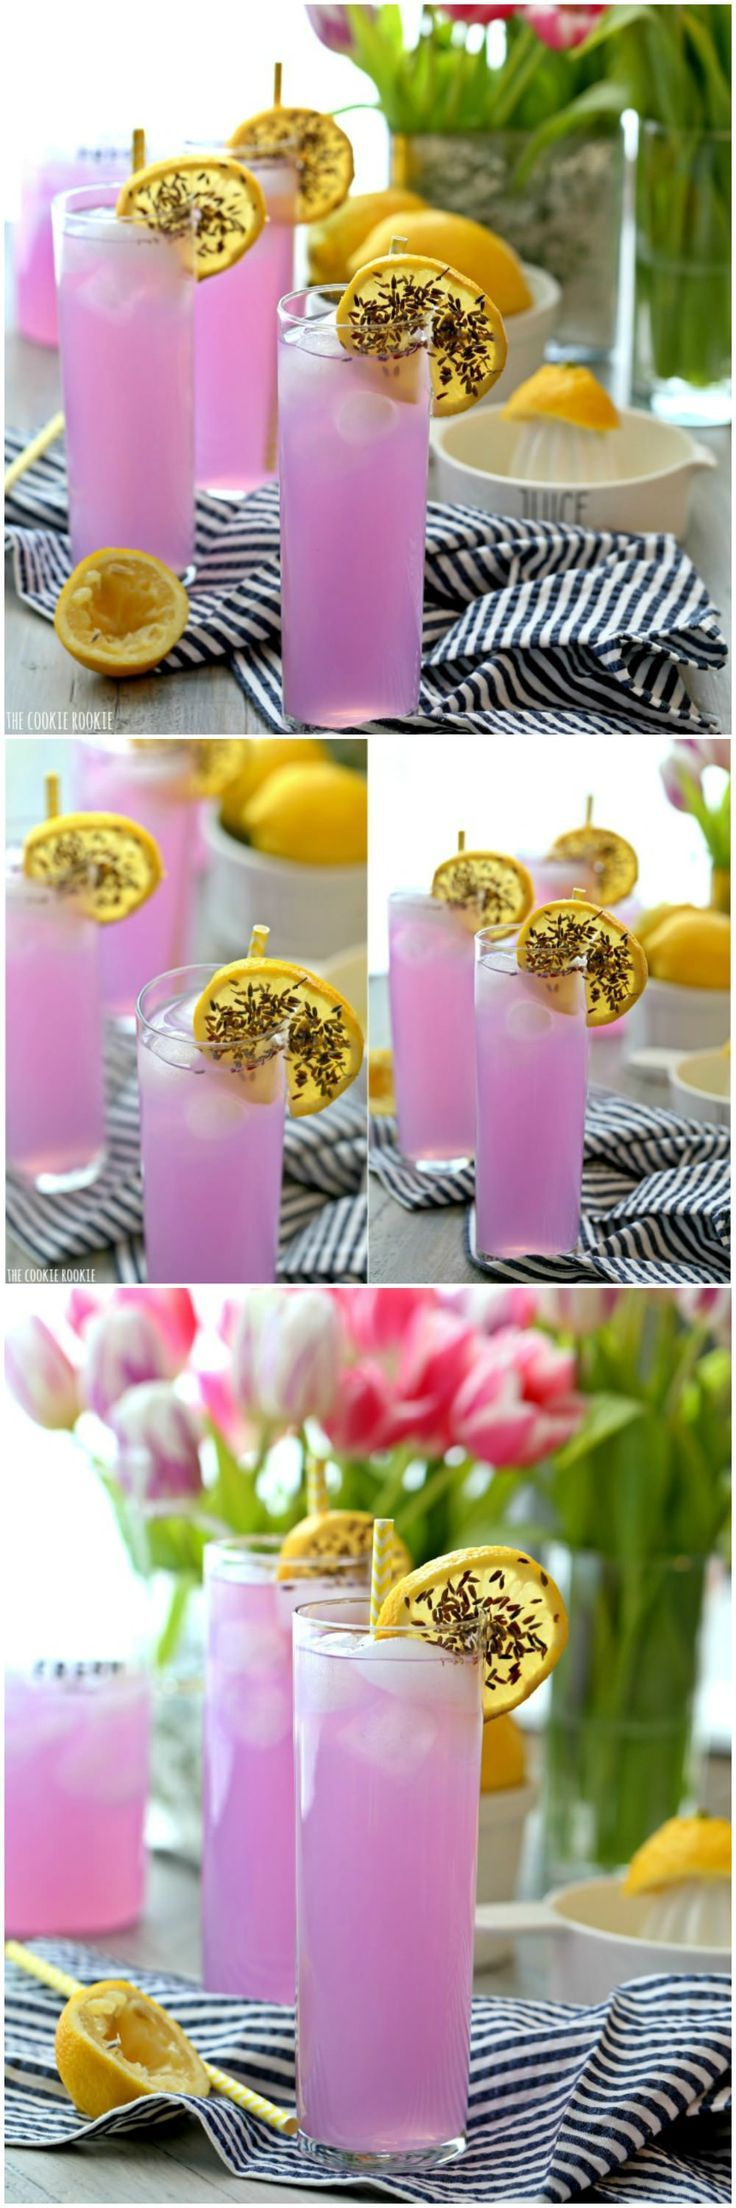 Lavender Lemonade is a beautiful and fragrant way to enjoy your Lemonade now that the weather is nice! Cheers!